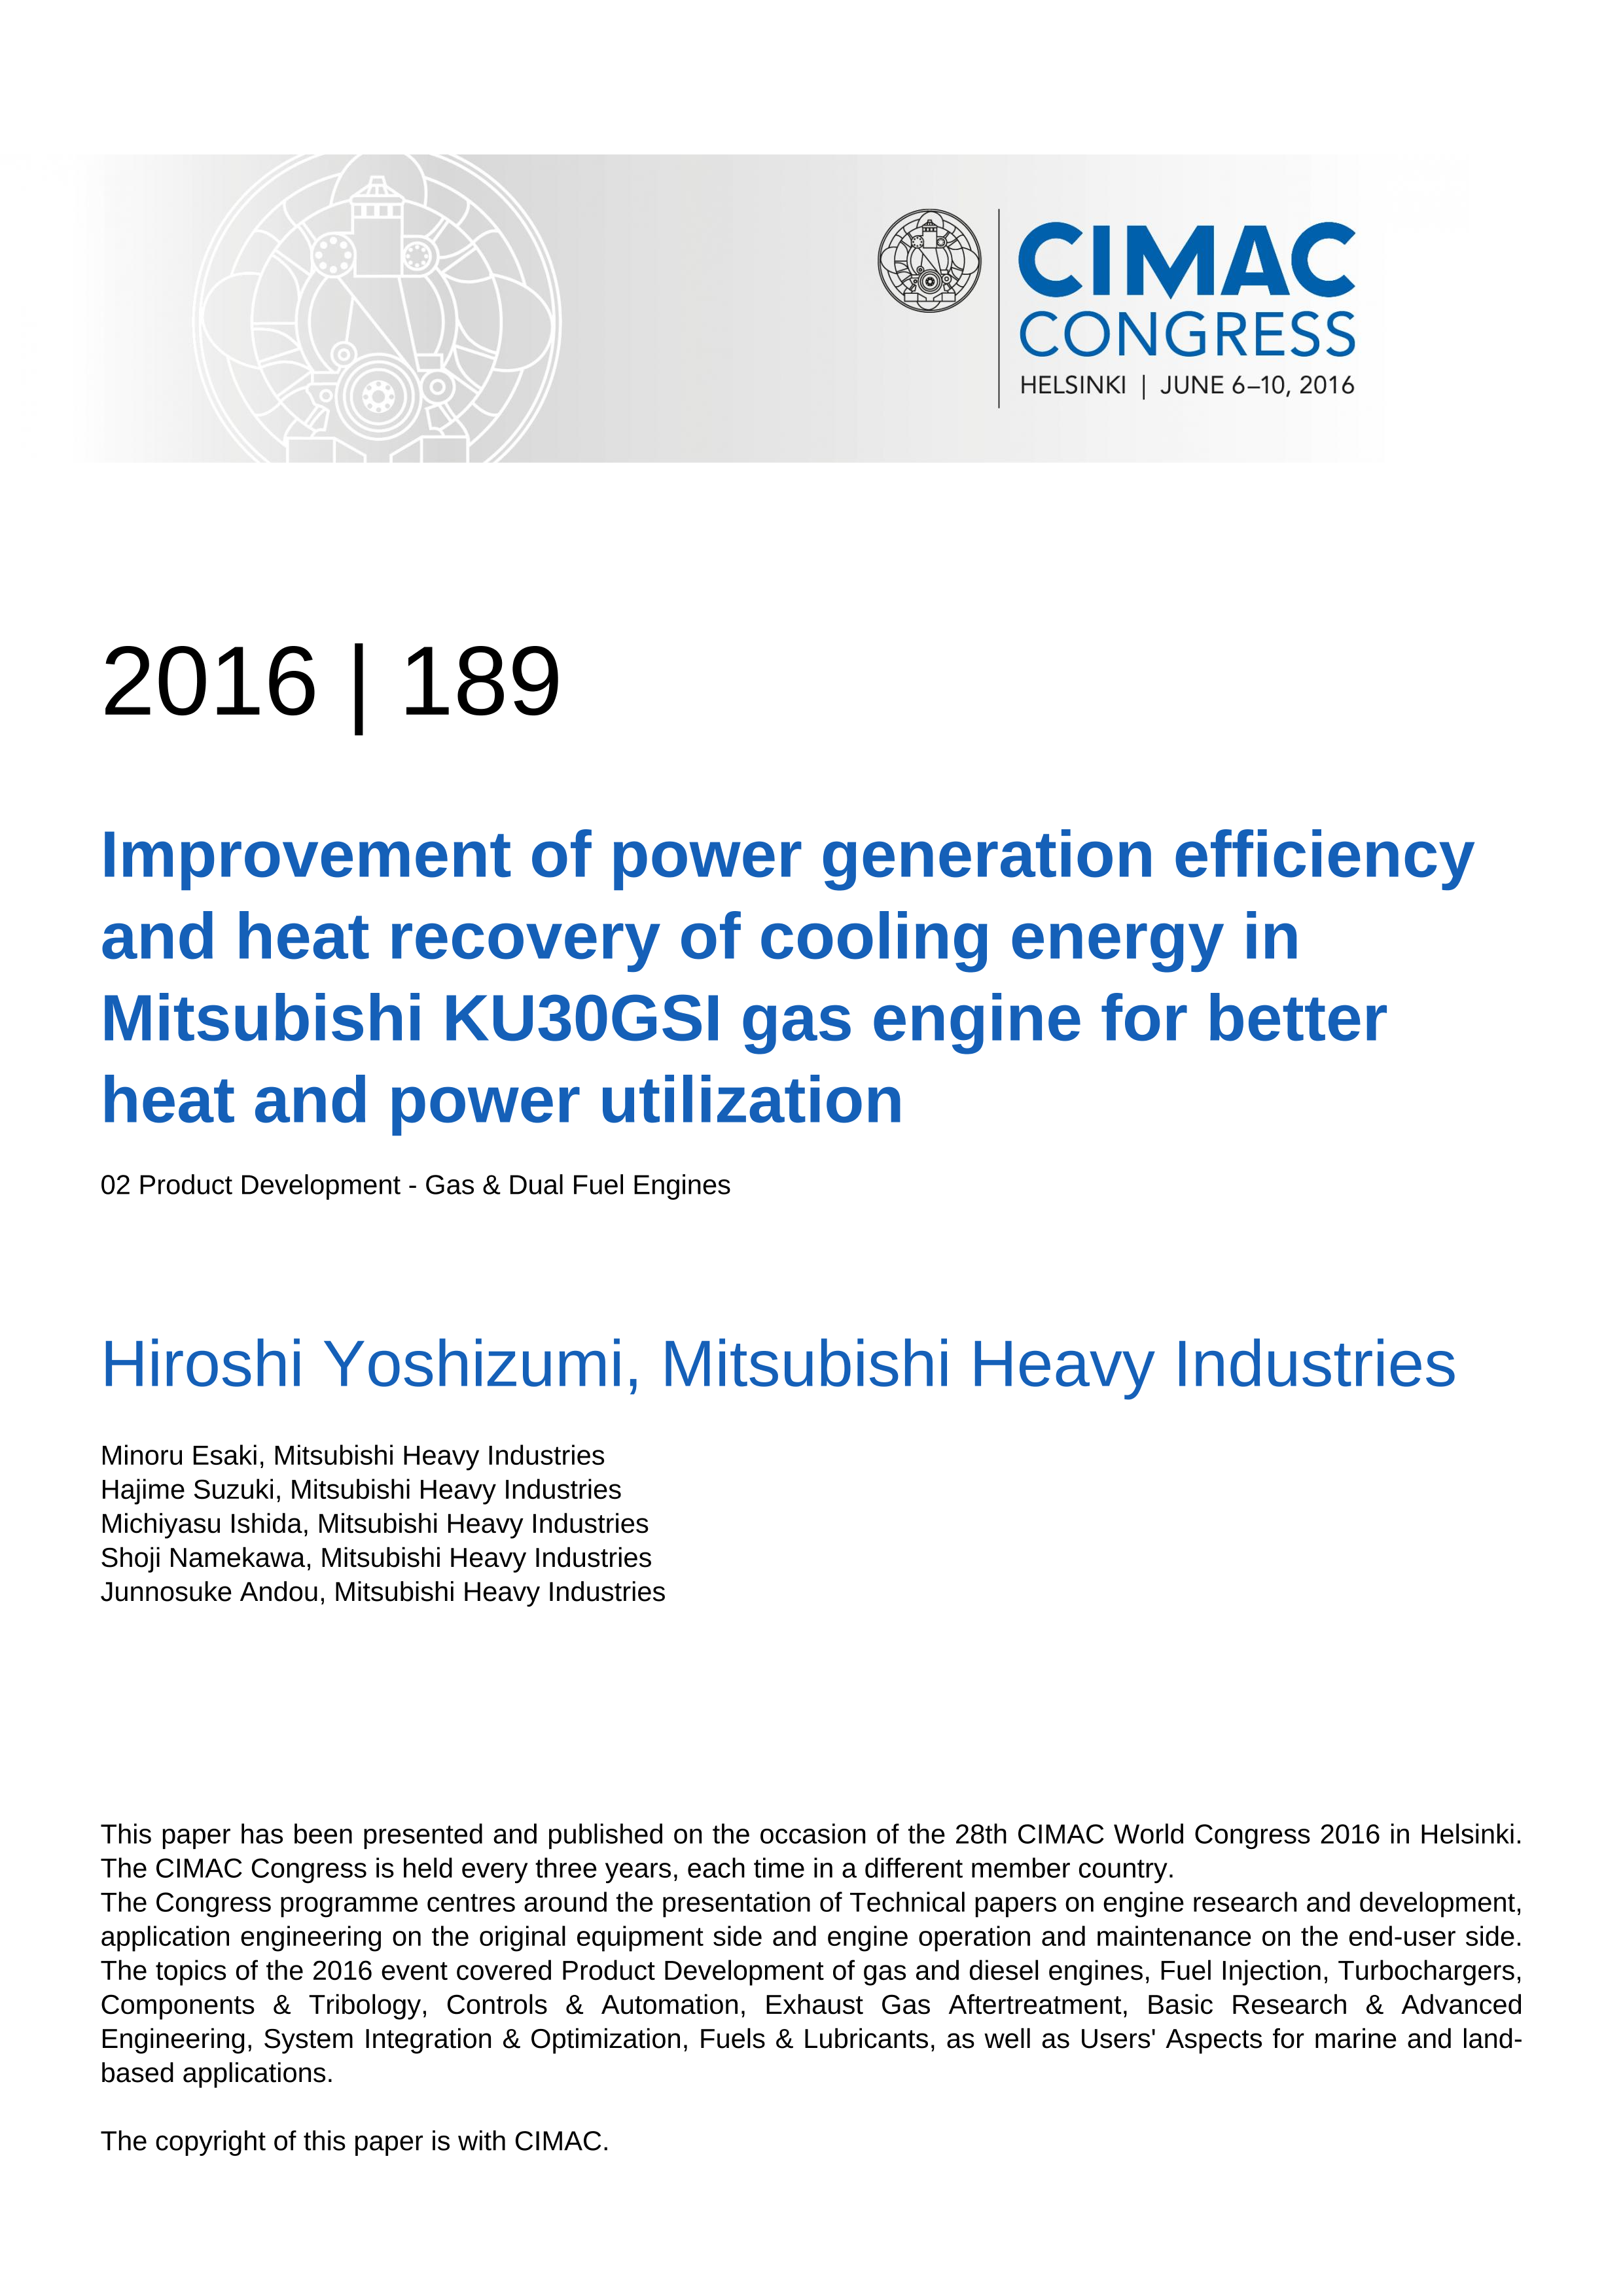 Improvement of power generation efficiency and heat recovery of